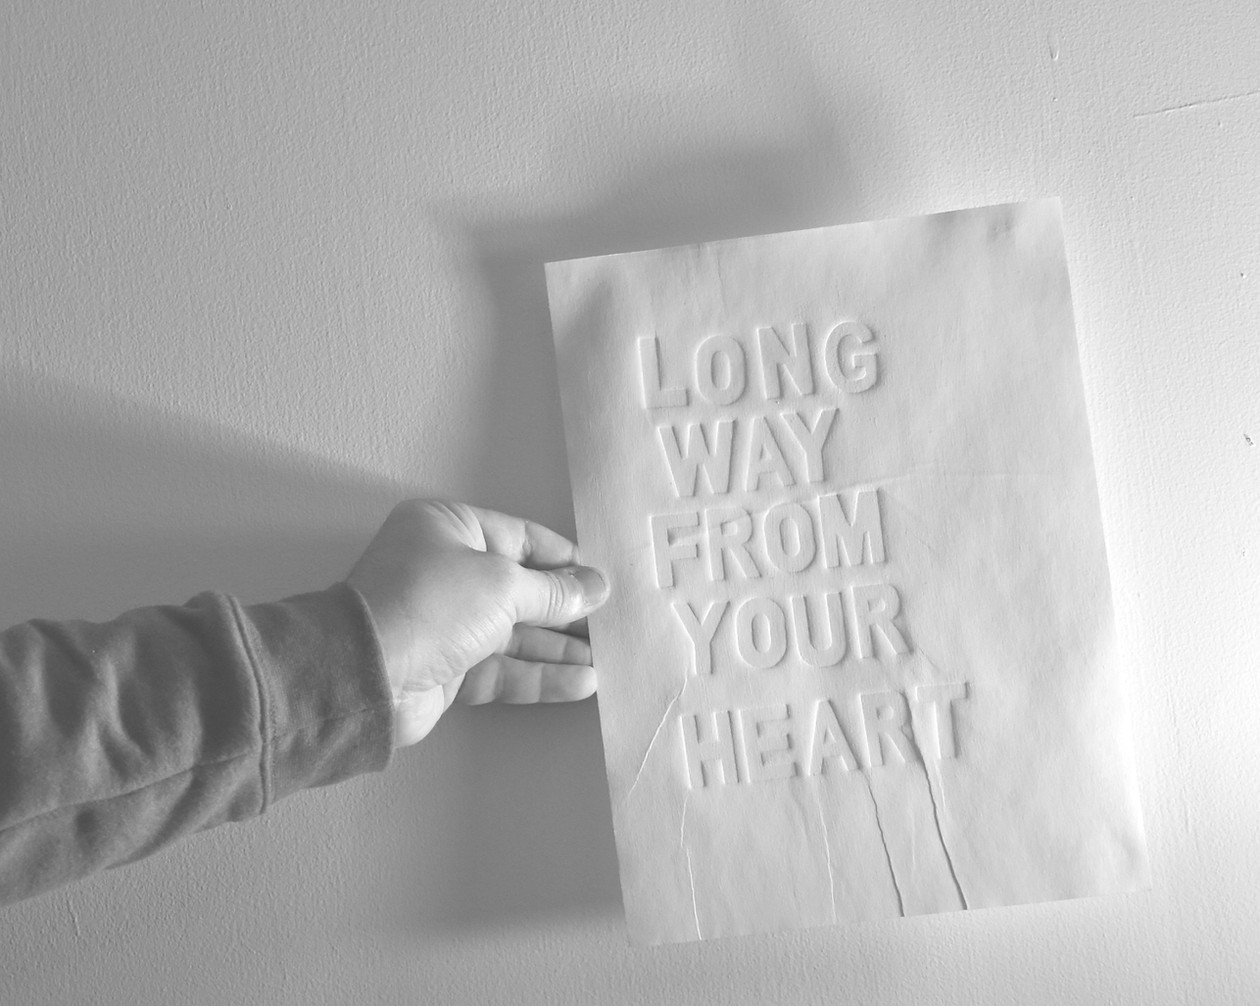 long way from your heart